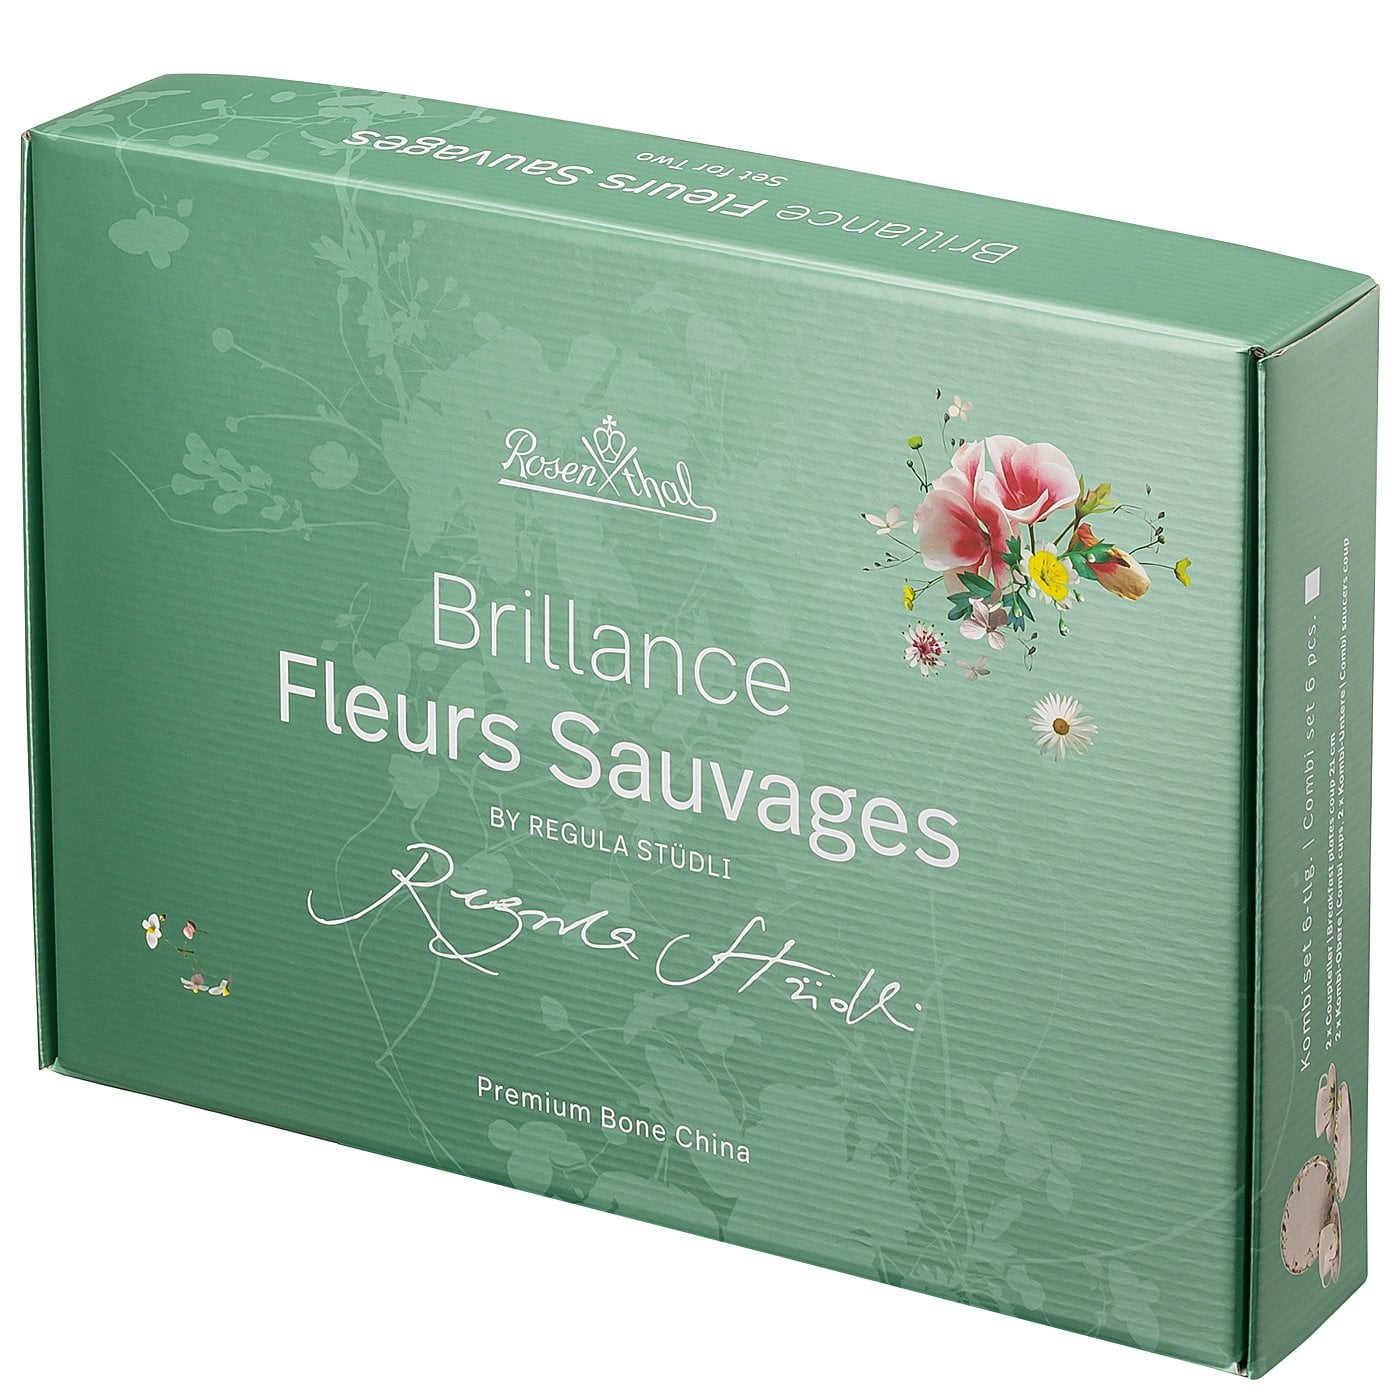 Brillance Fleurs Sauvages Set 6 Pcs With Combi Cups Saucers And